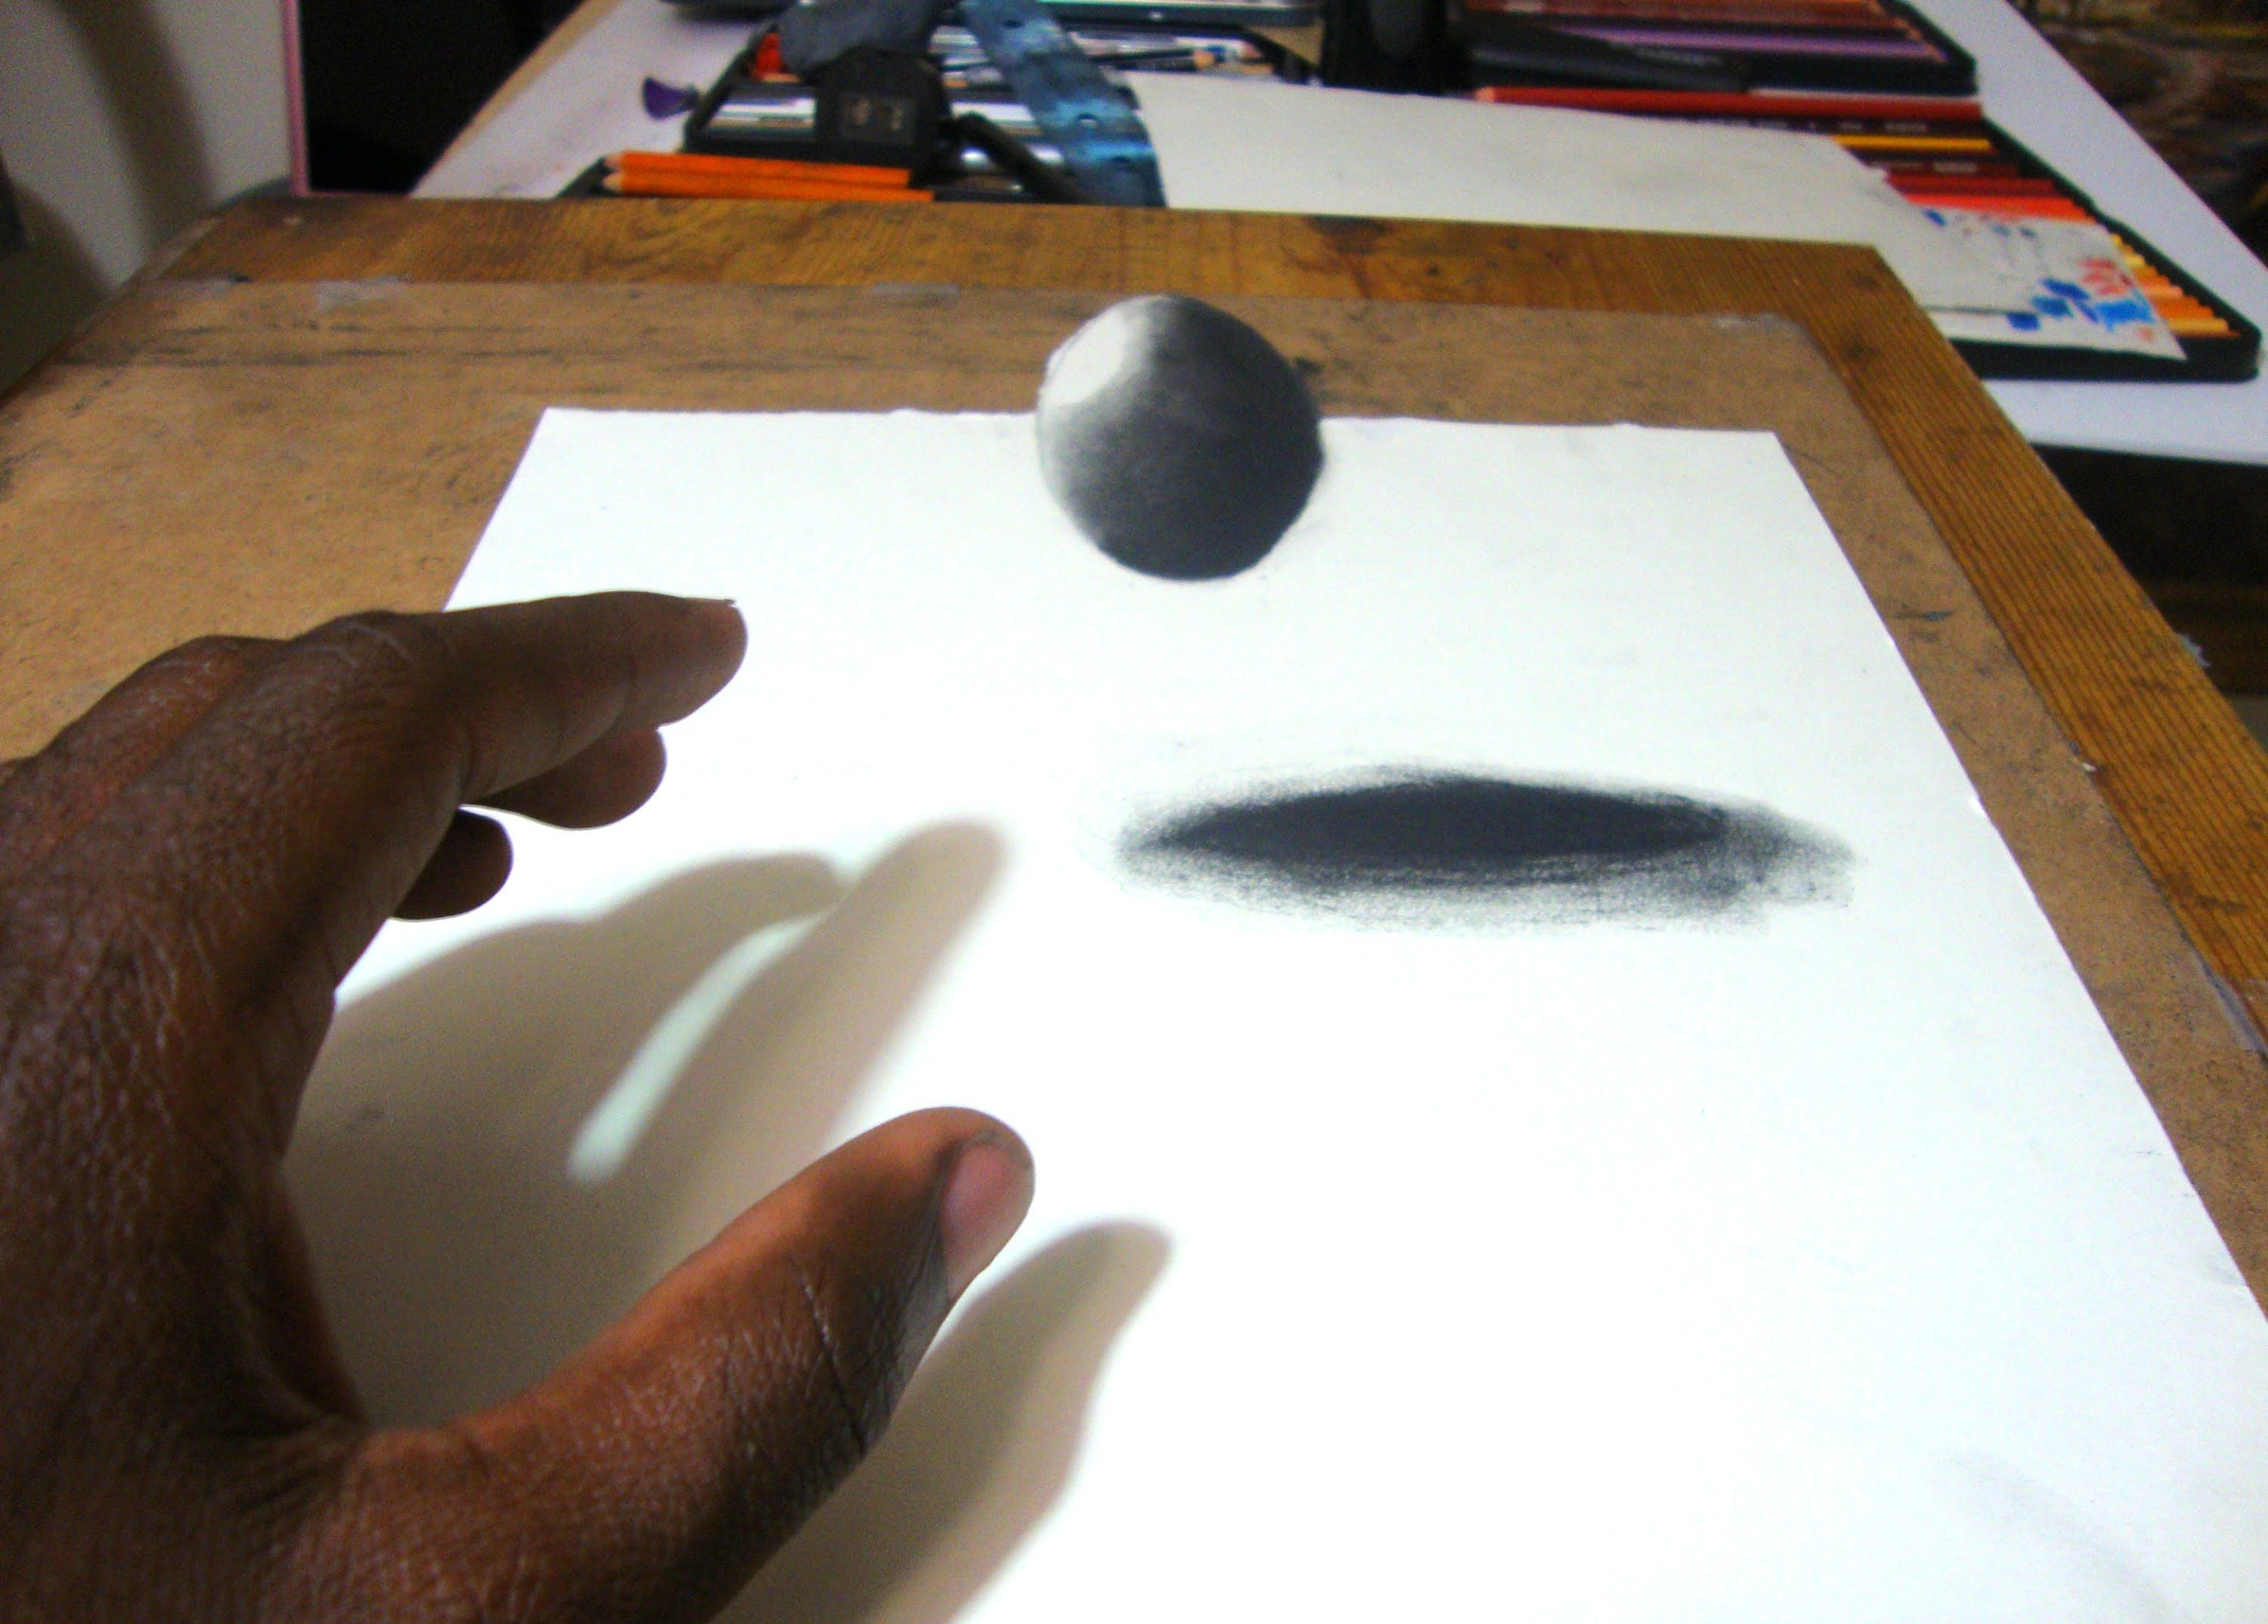 Best D DRAWINGS Images On Pinterest Drawings D Art - 29 incredible examples 3d pencil drawings